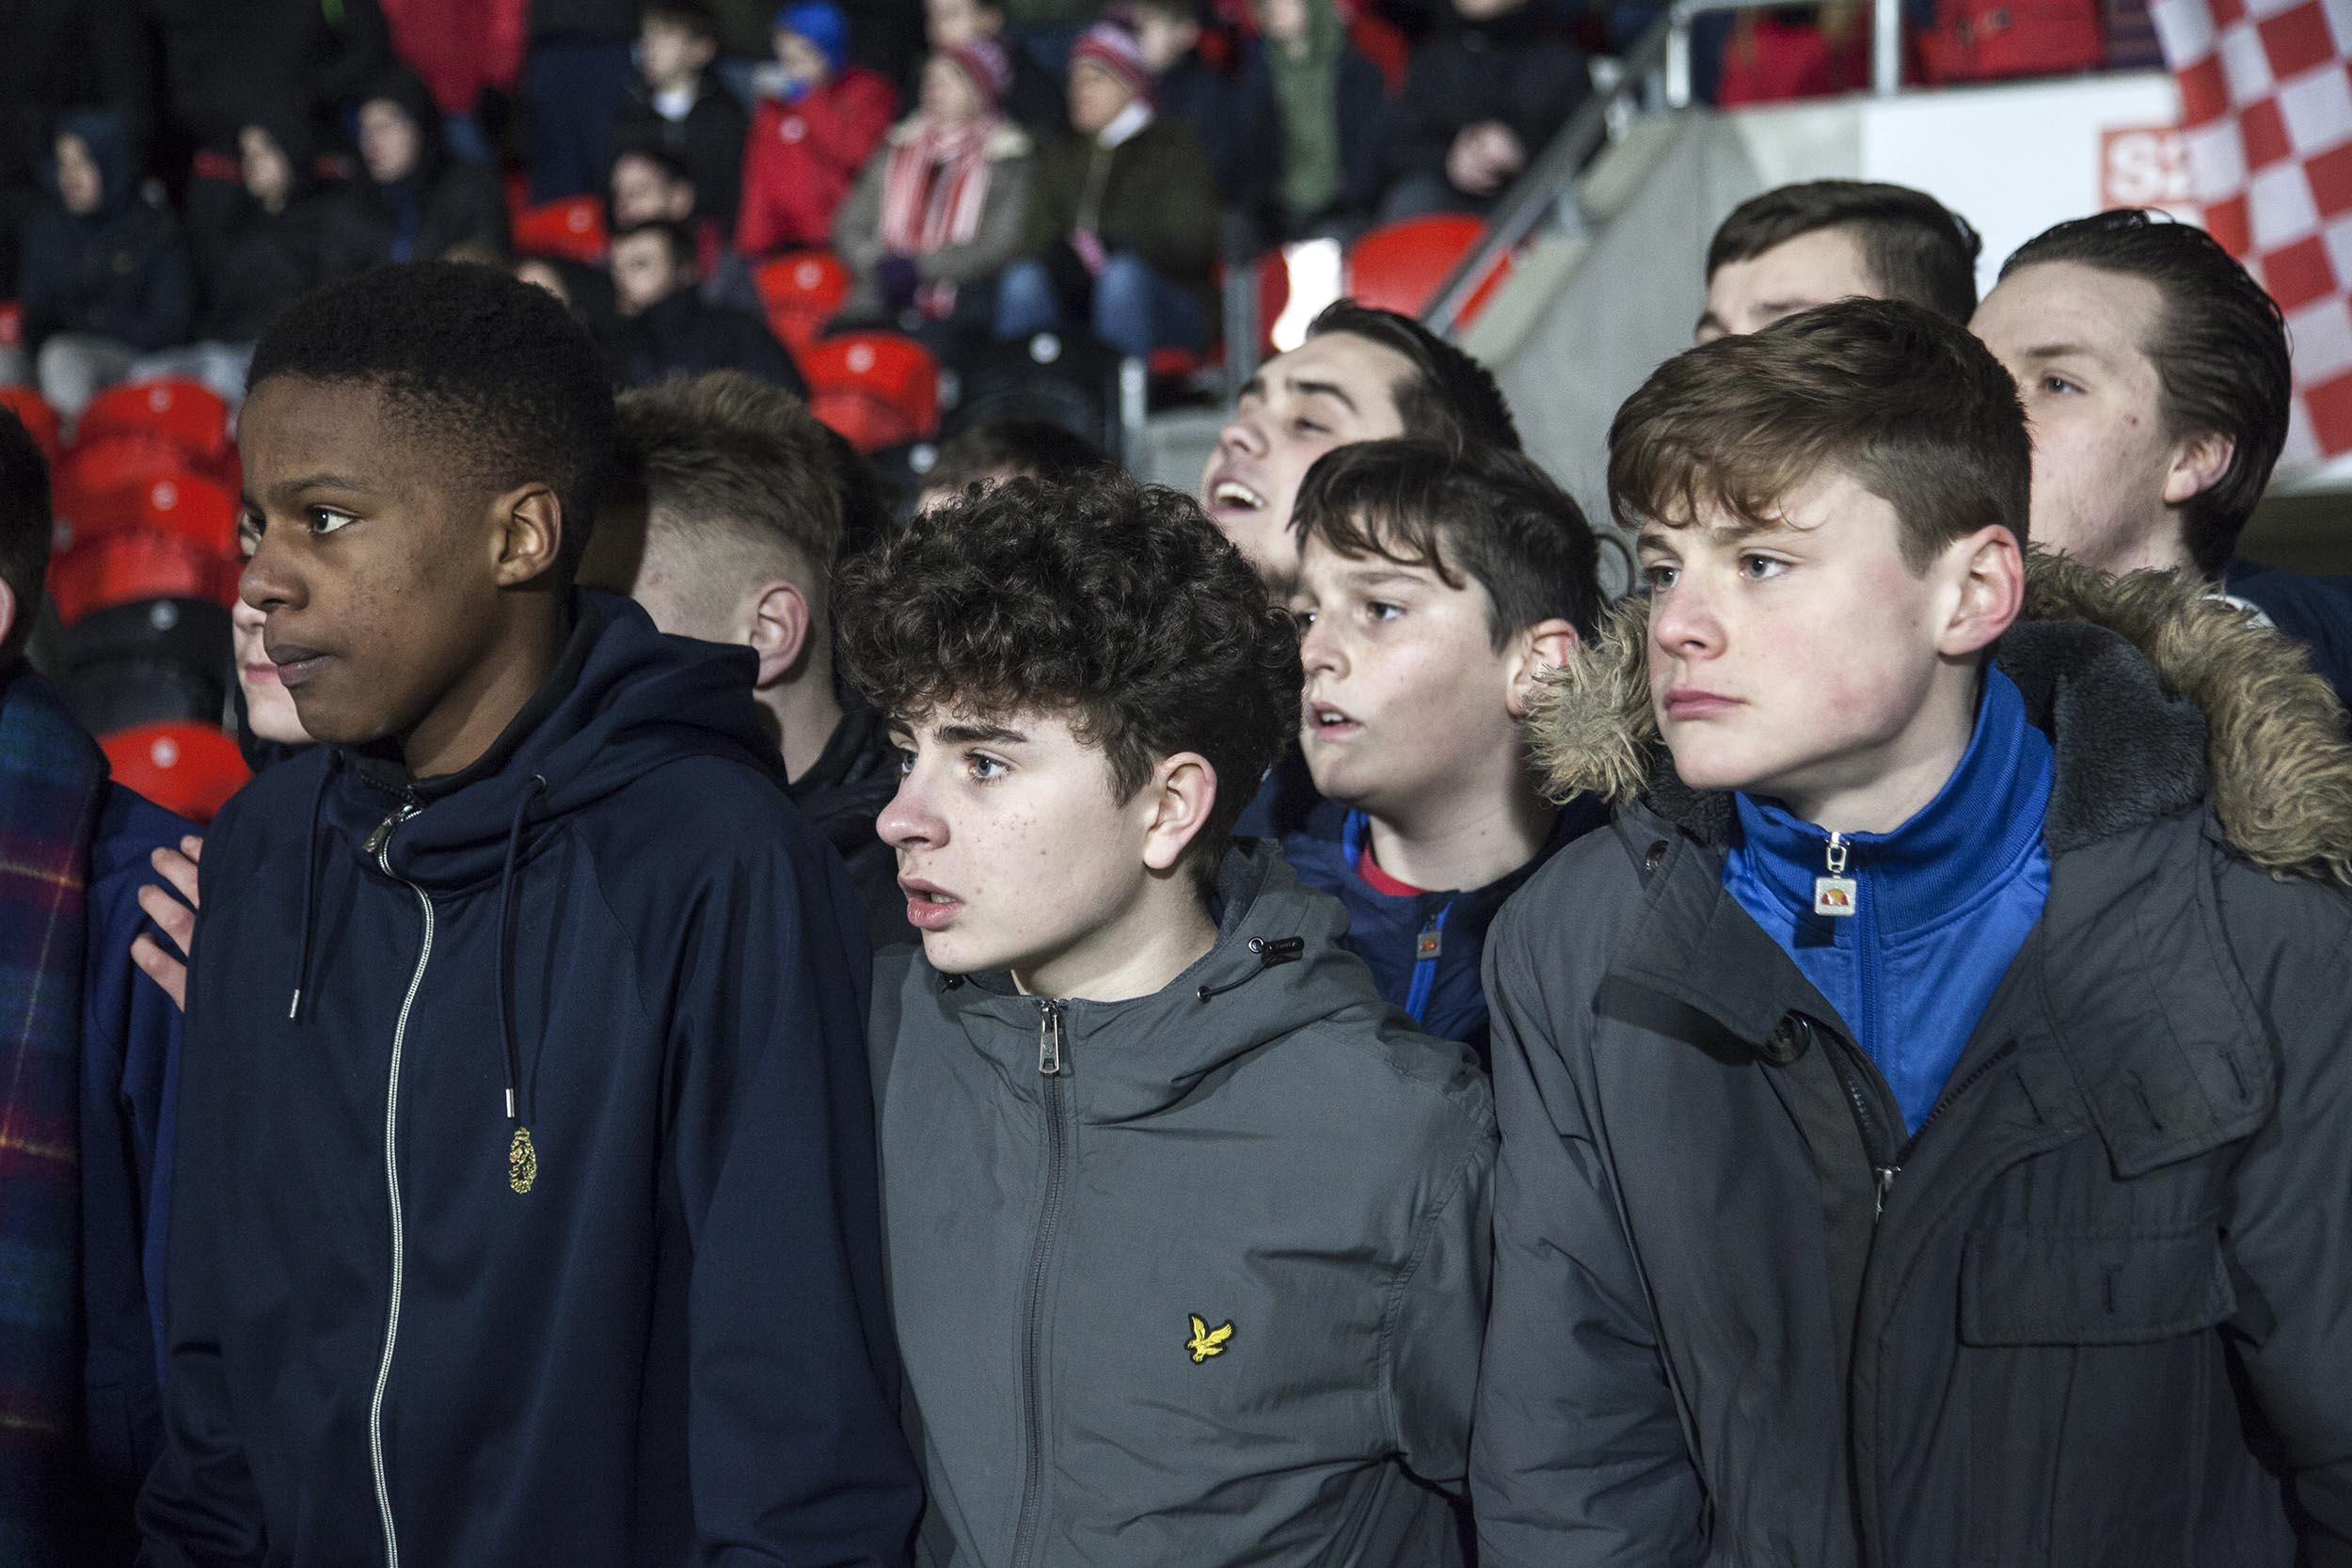 A documentary photograph of young fans at Doncaster Rovers' Keepmoat Stadium.  I was commissioned as documentary photographer by German football magazine 11 Freunde.